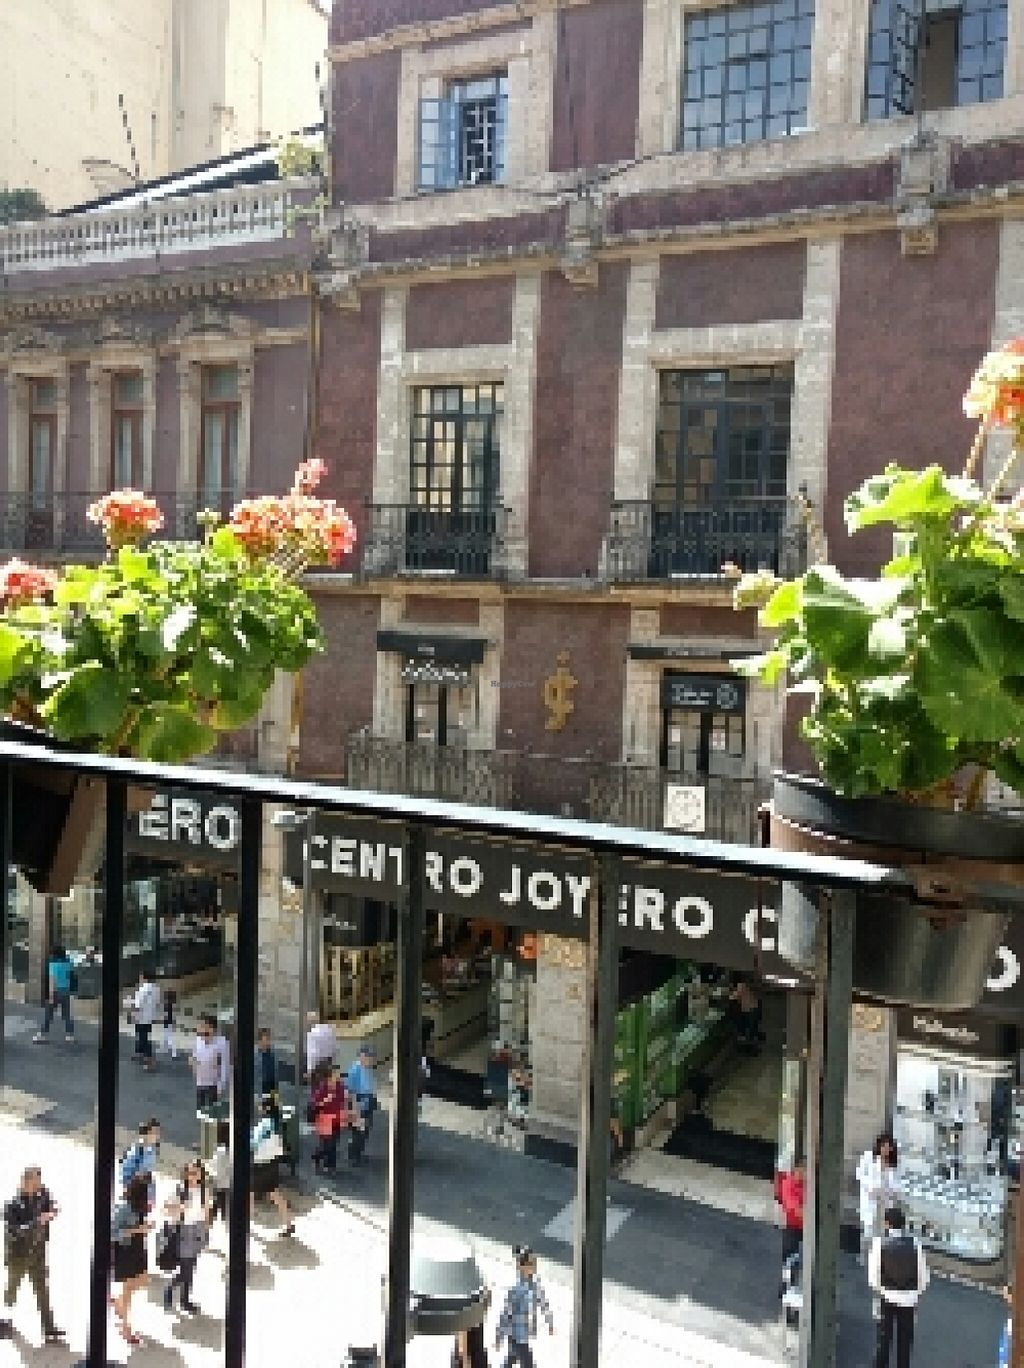 """Photo of Los Vegetarianos  by <a href=""""/members/profile/msangeliic"""">msangeliic</a> <br/>view from restaurant window <br/> April 12, 2016  - <a href='/contact/abuse/image/44019/144282'>Report</a>"""